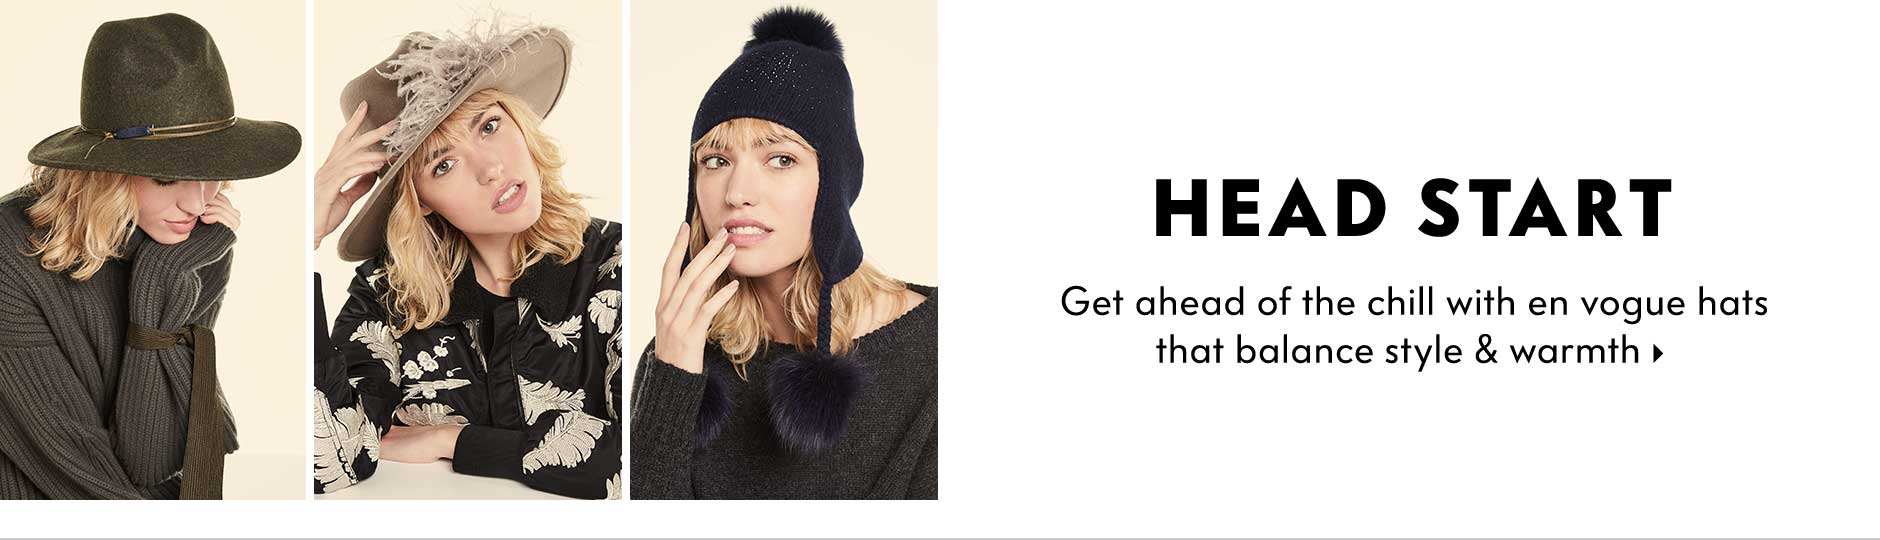 Head Start - Get ahead of the chill with en vogue hats that balance style & warmth